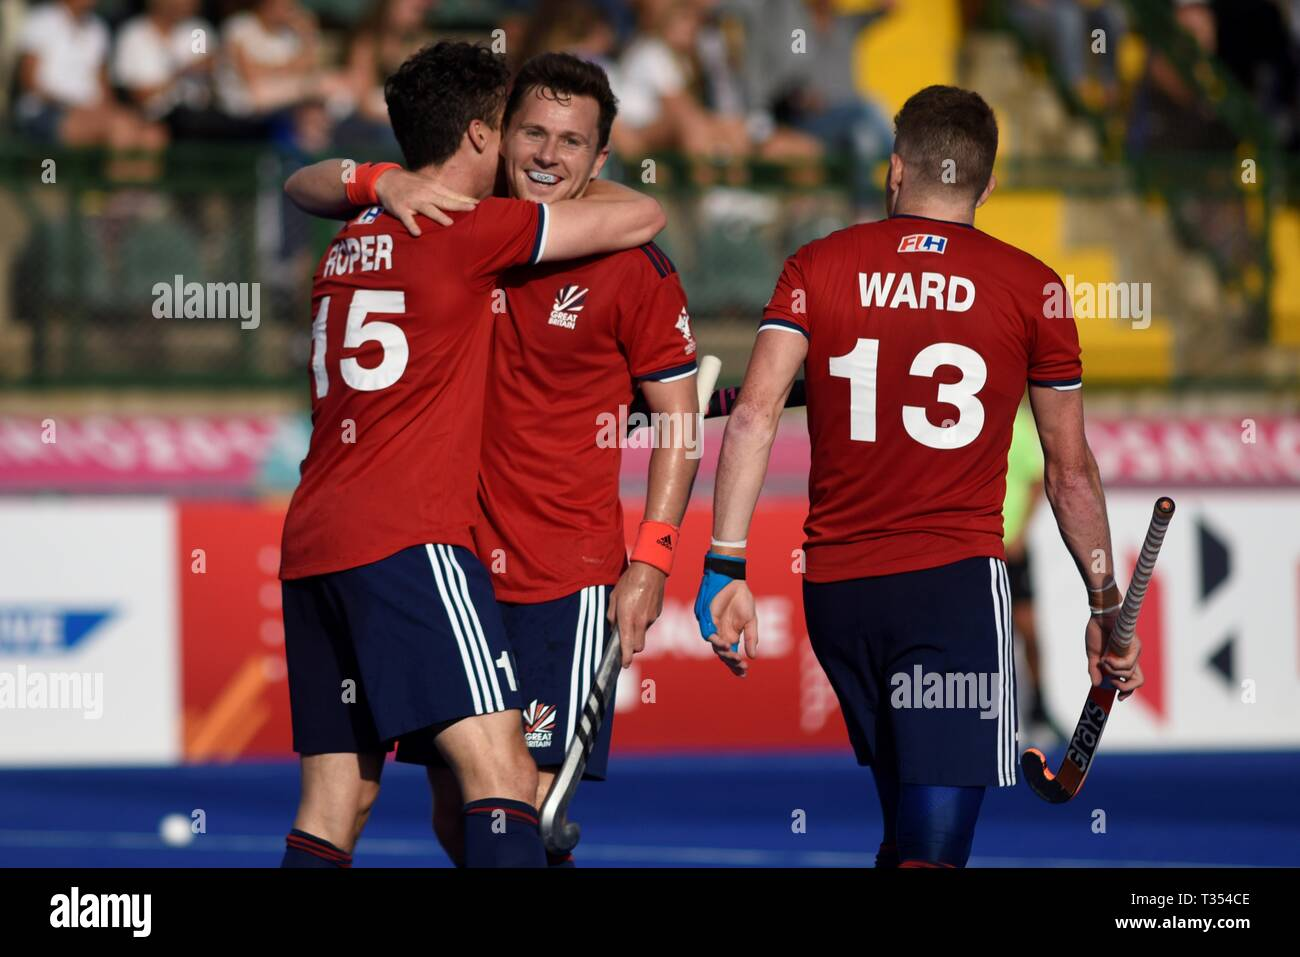 Rosario Argentina 06th Apr 2019 Uk Players Celebrate After